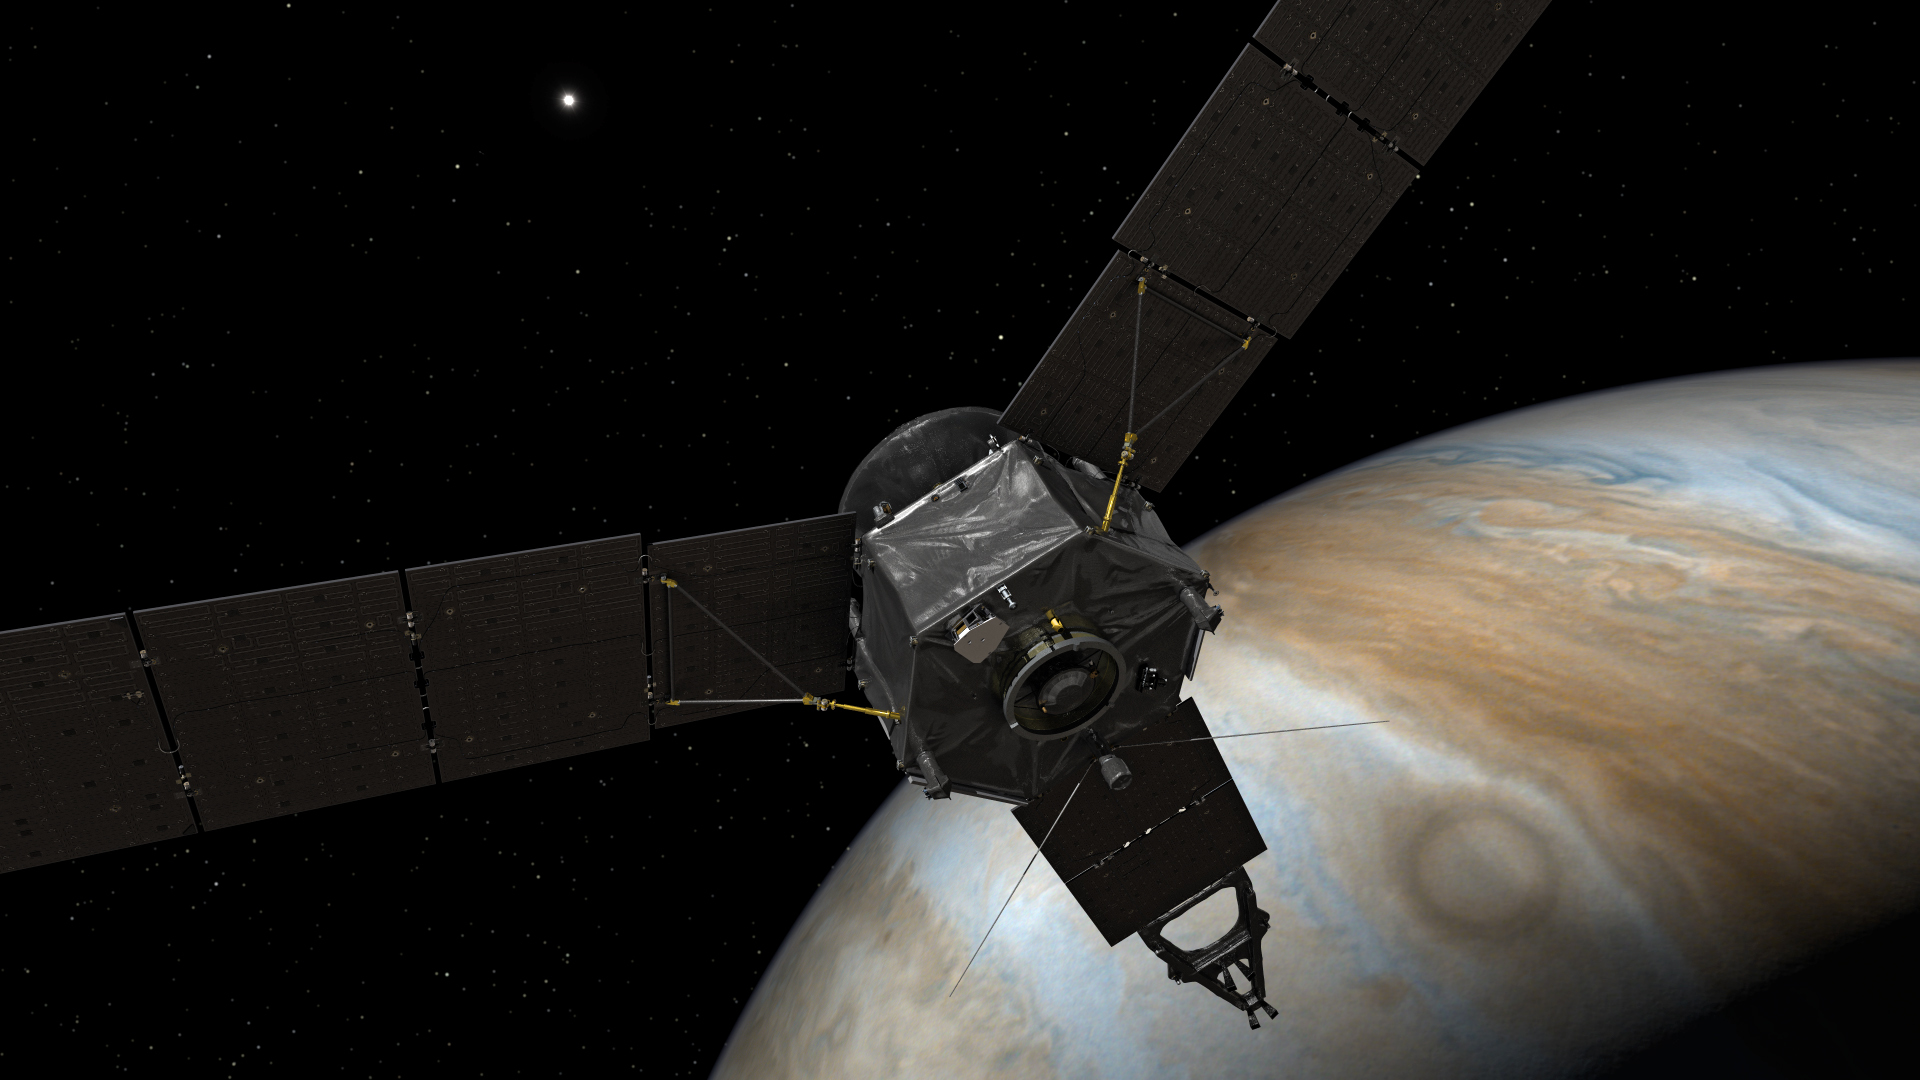 planet nasas juno spacecraft - HD 1920×1080